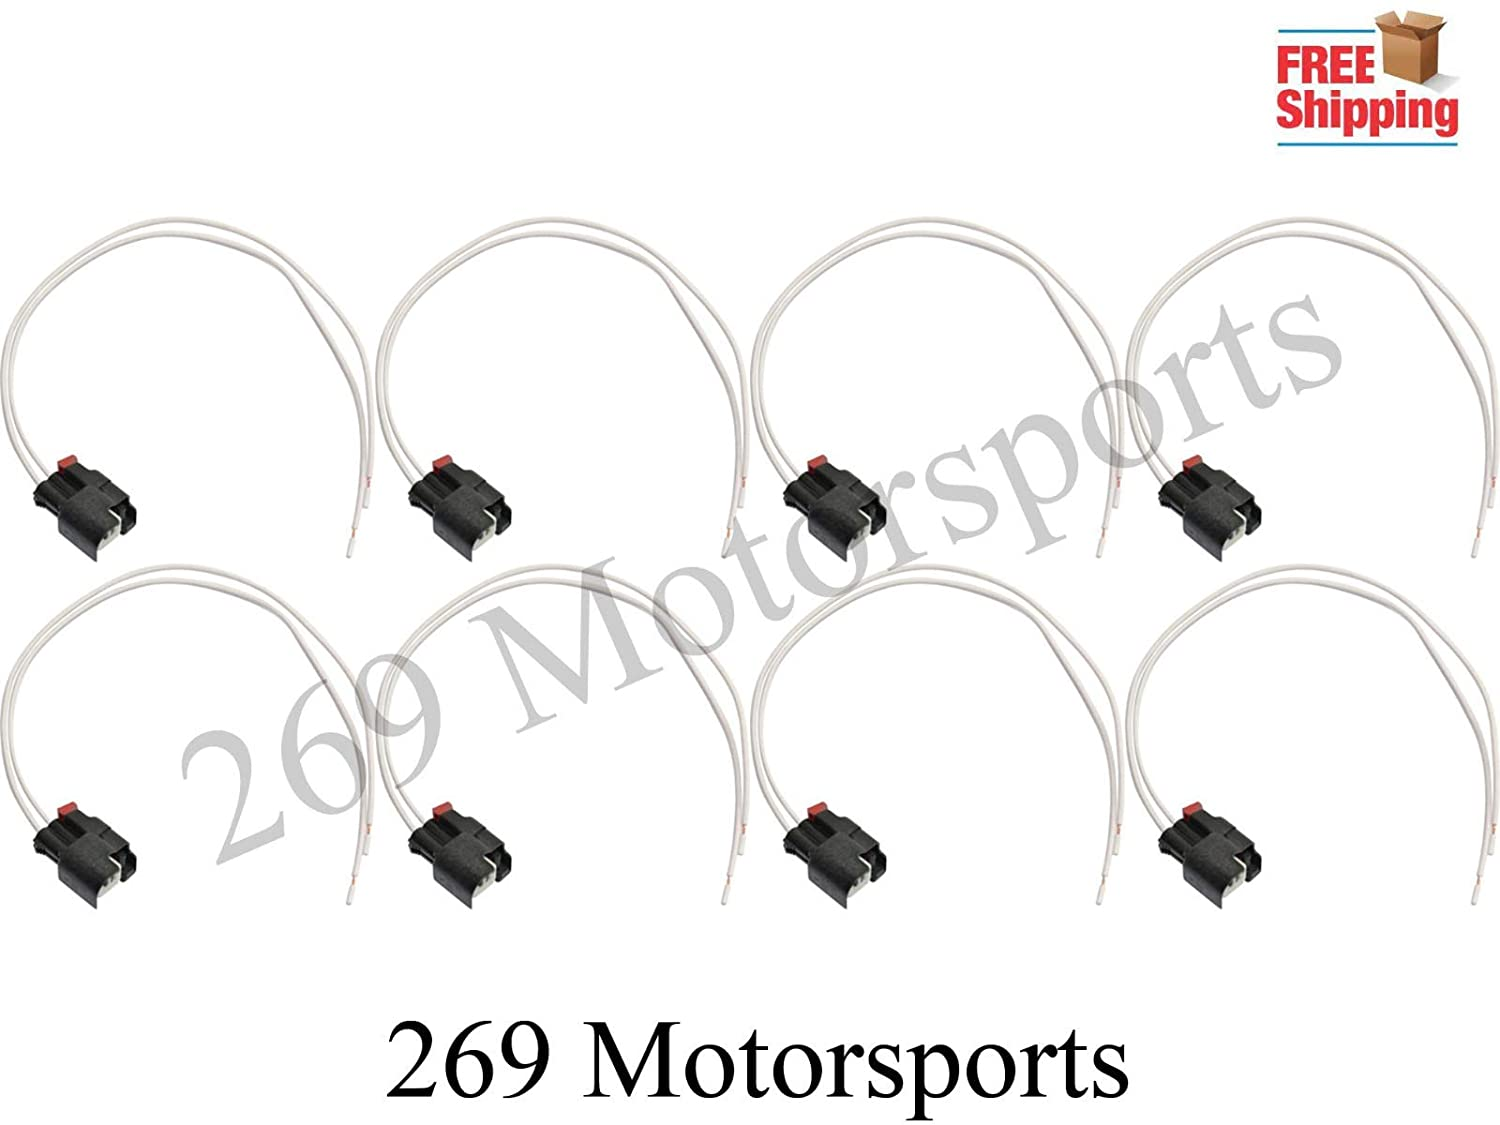 Terrific Amazon Com Fuel Injector Connector Wiring Harness Kit Fits Wrangler Wiring Cloud Pimpapsuggs Outletorg